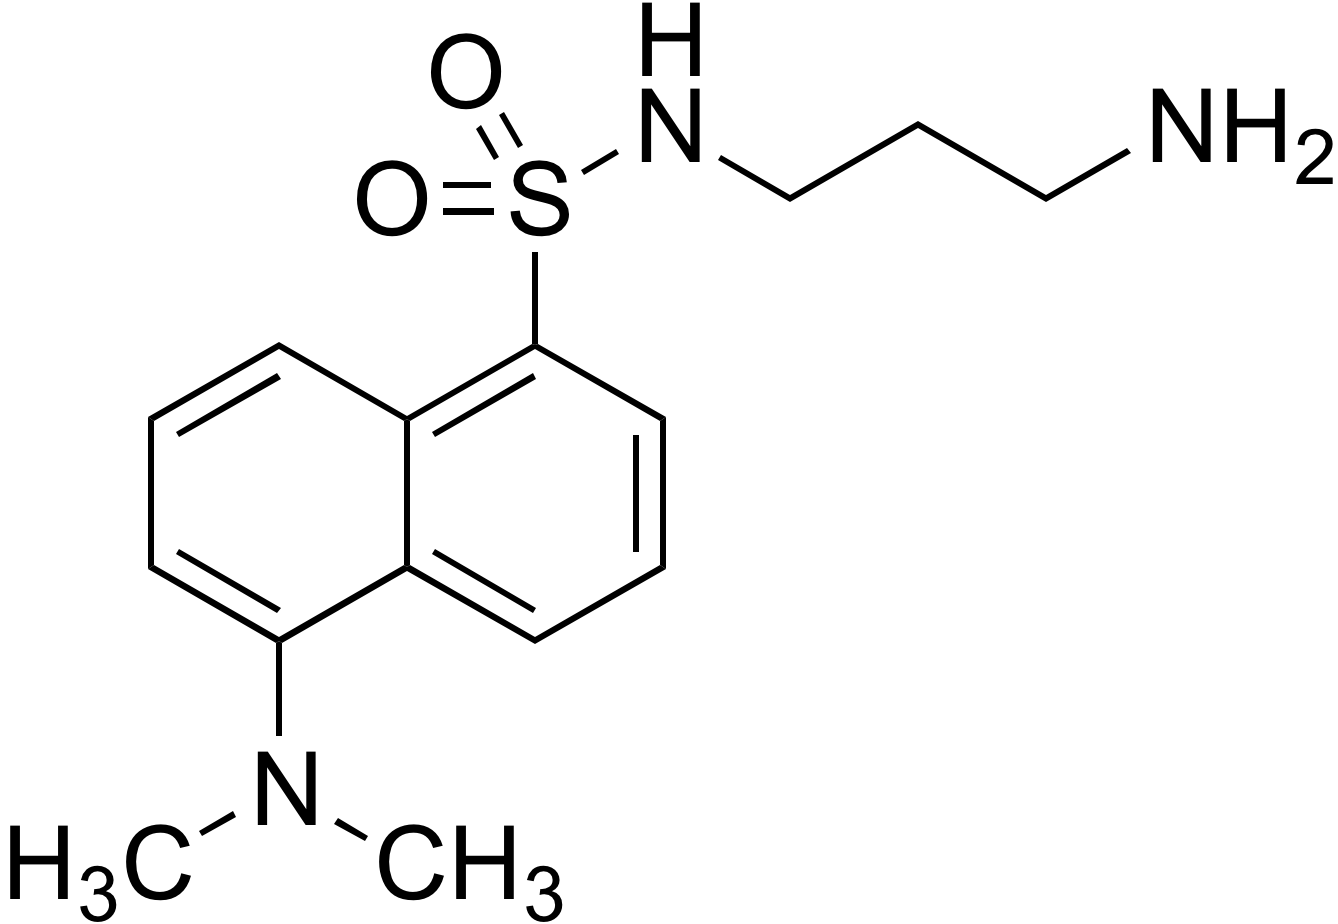 N-Dansyl 1,3-diaminopropane